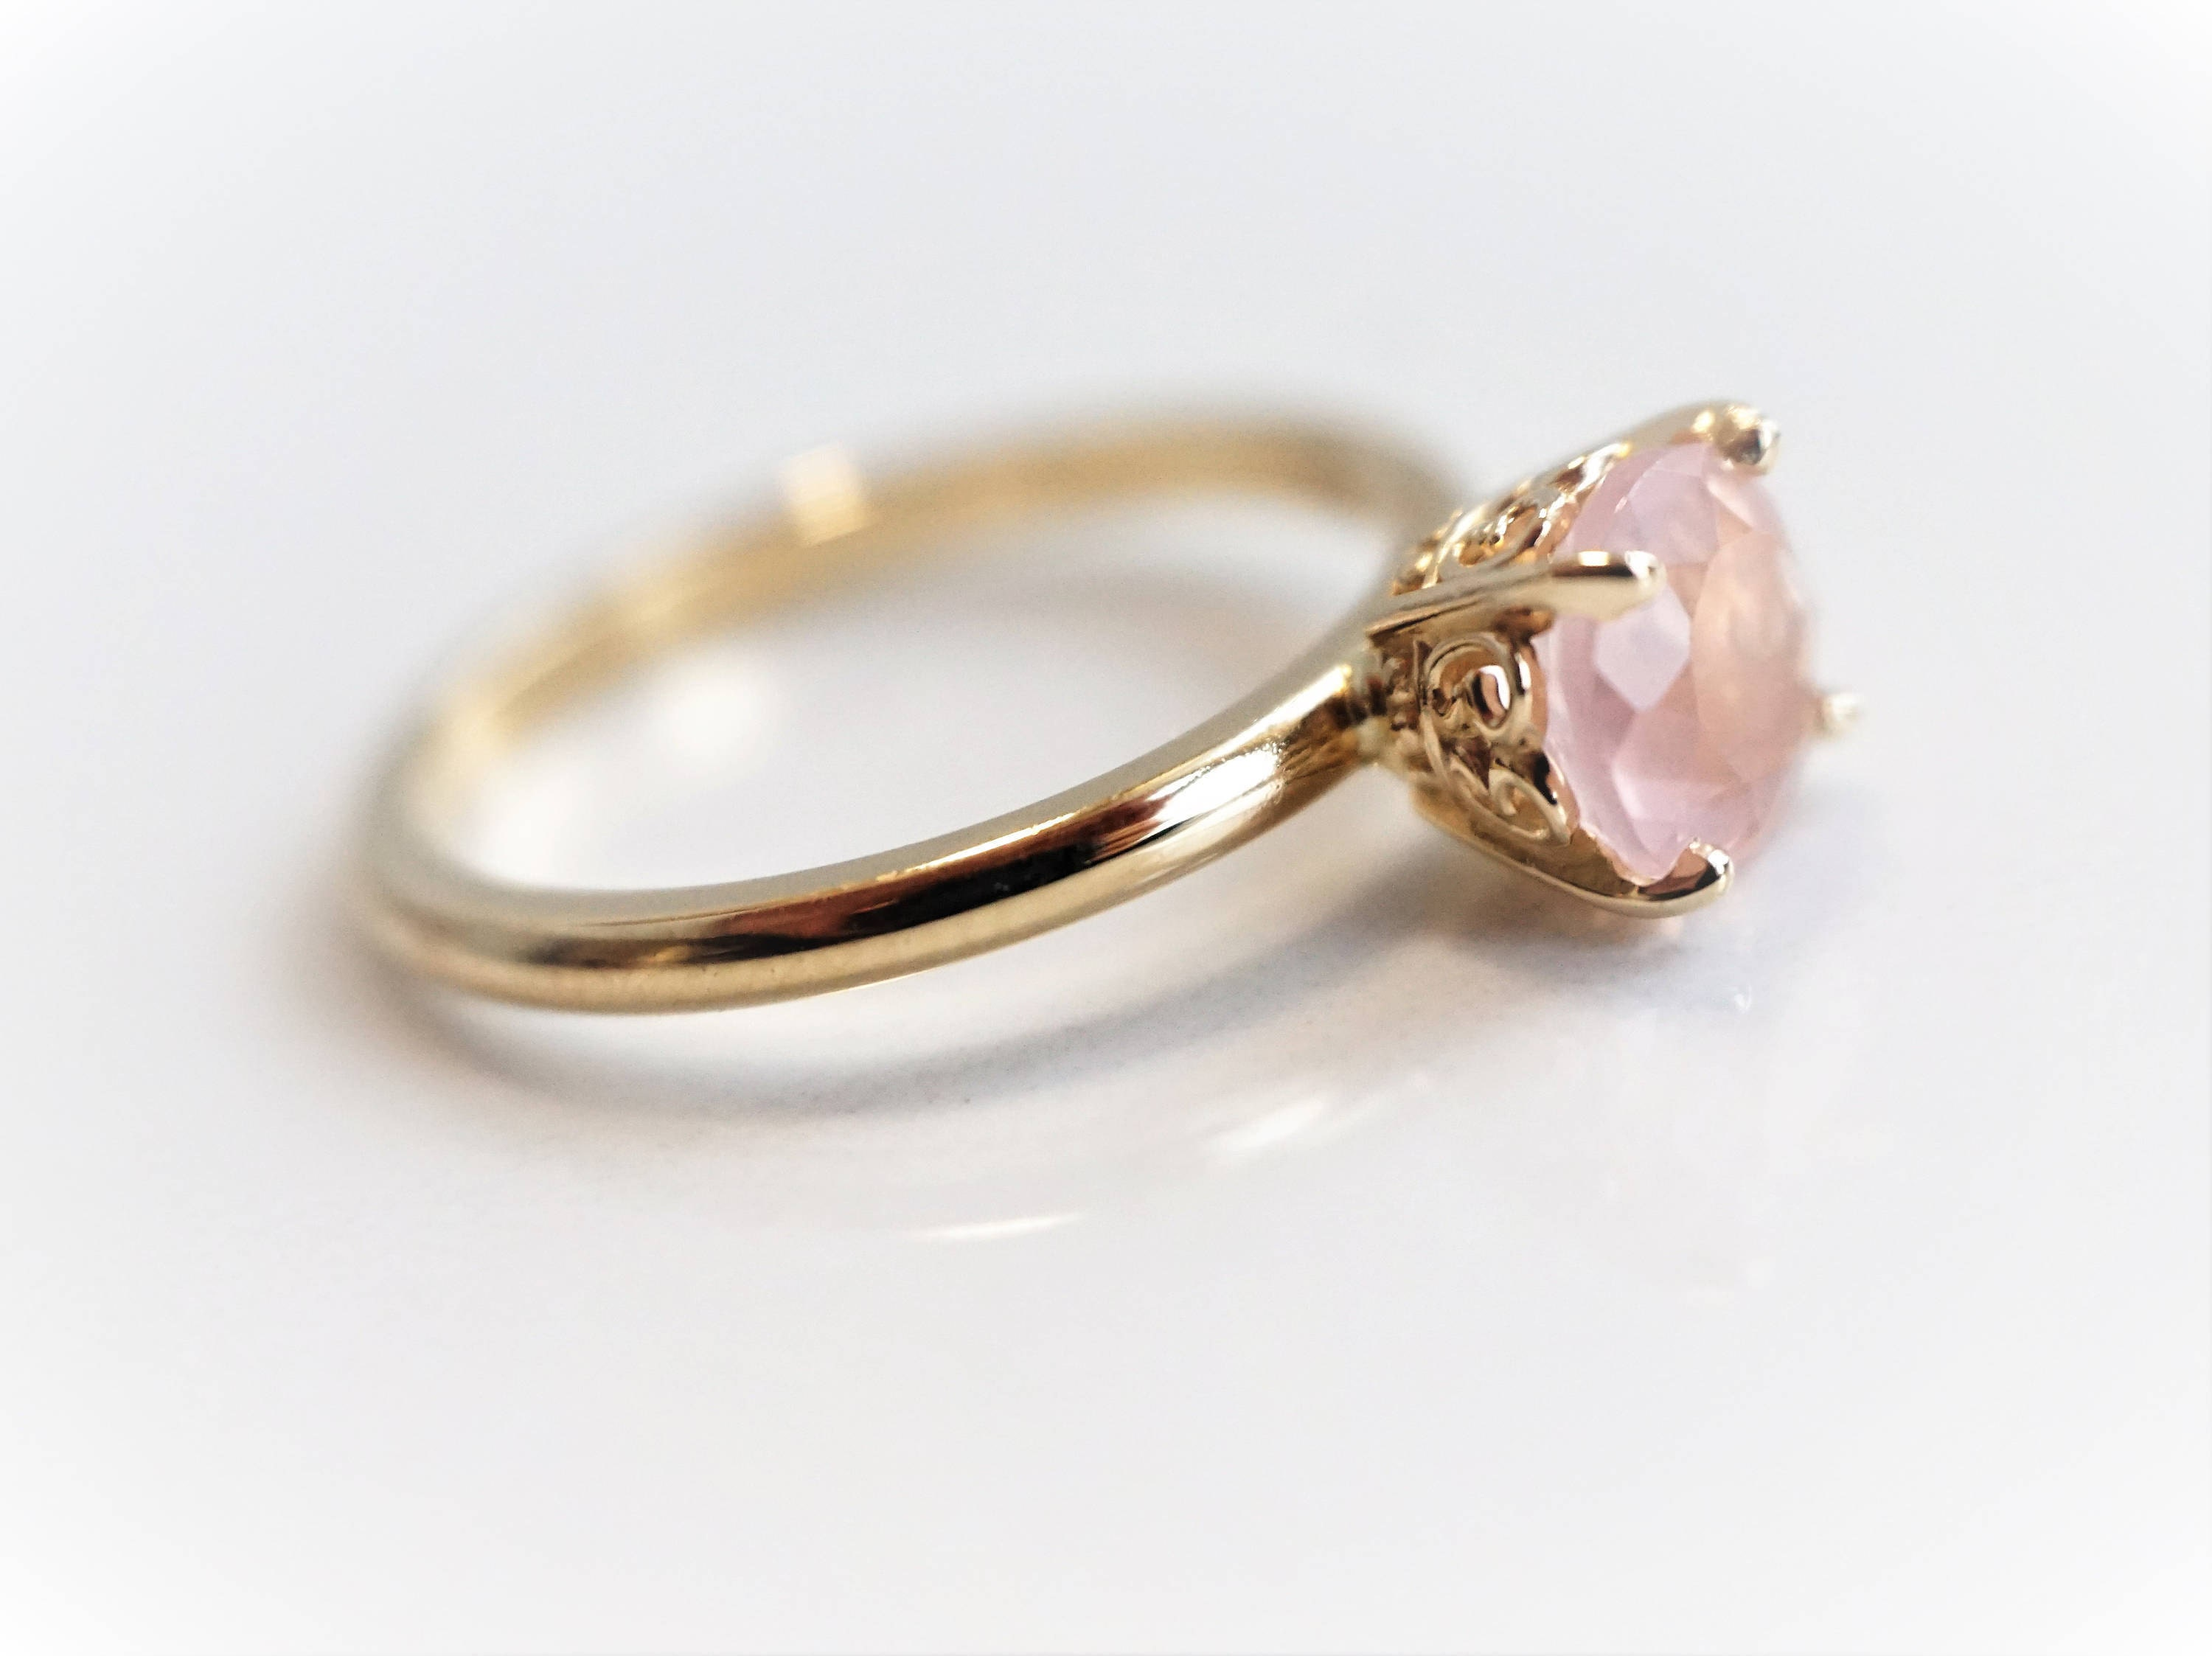 quartz sapphire floral oval cocktail cats matsuzaki wedding at mobile j s jewelry ring sale rings master id eye diamond for cat upload rose